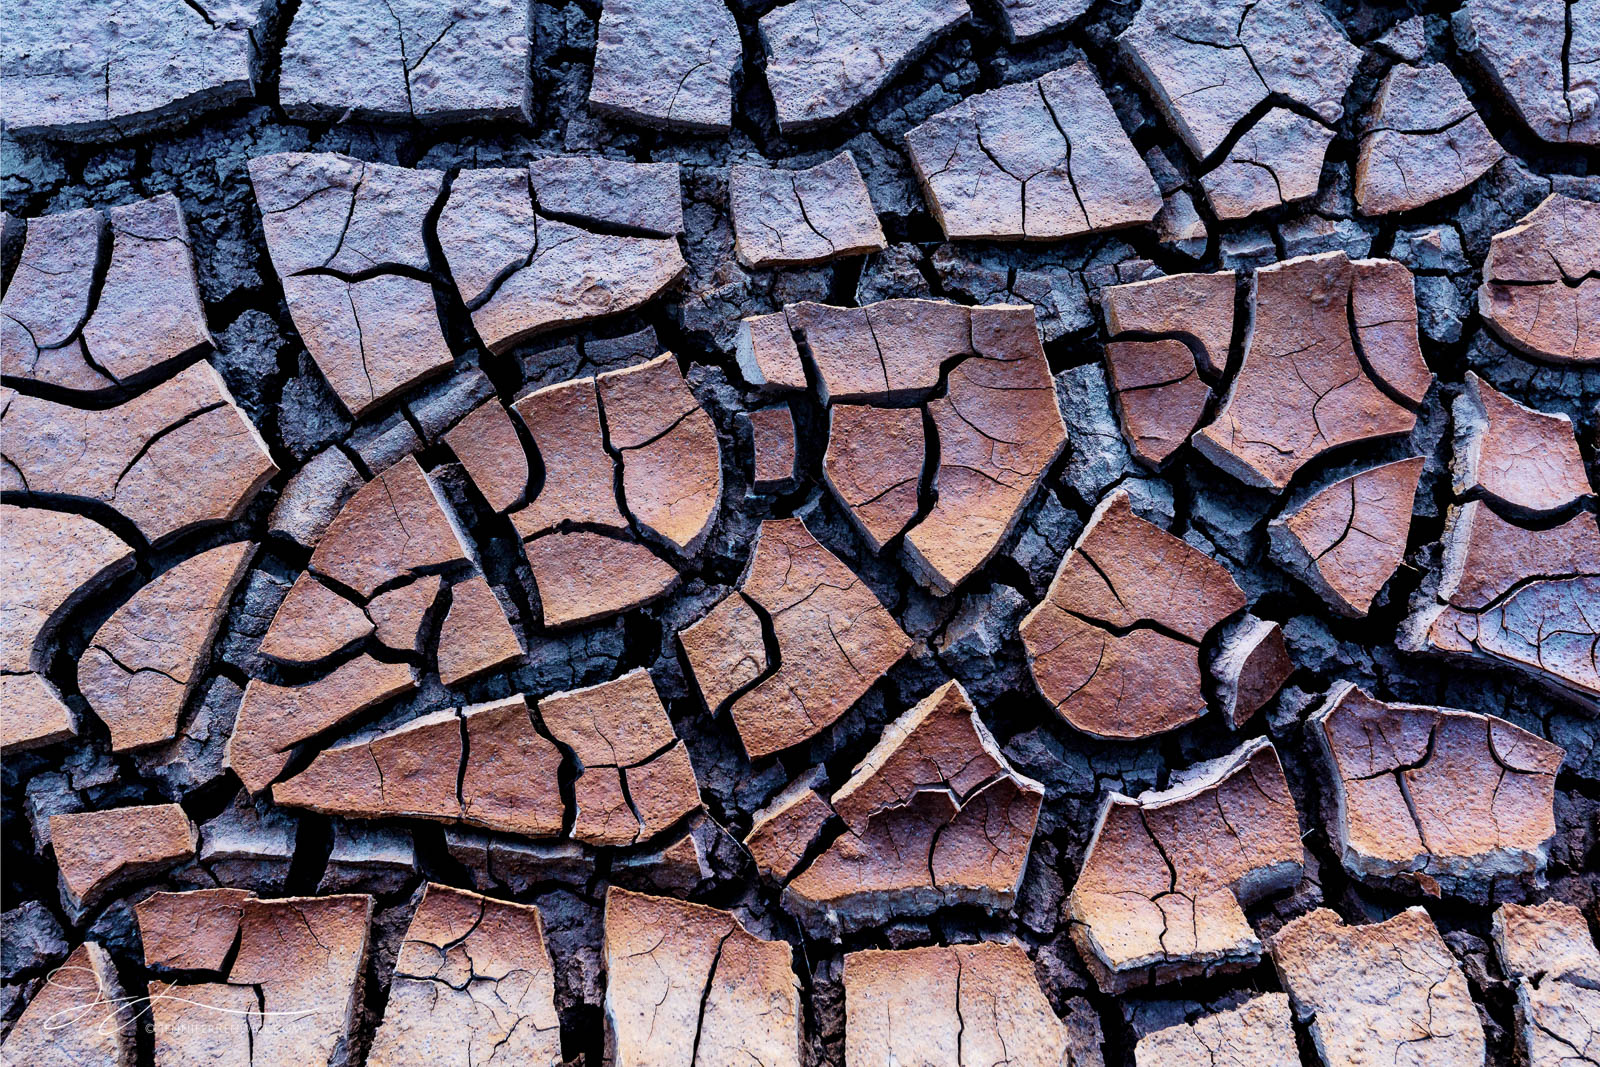 A small area of mud cracks takes on the colors of the desert in an ombré color pattern.